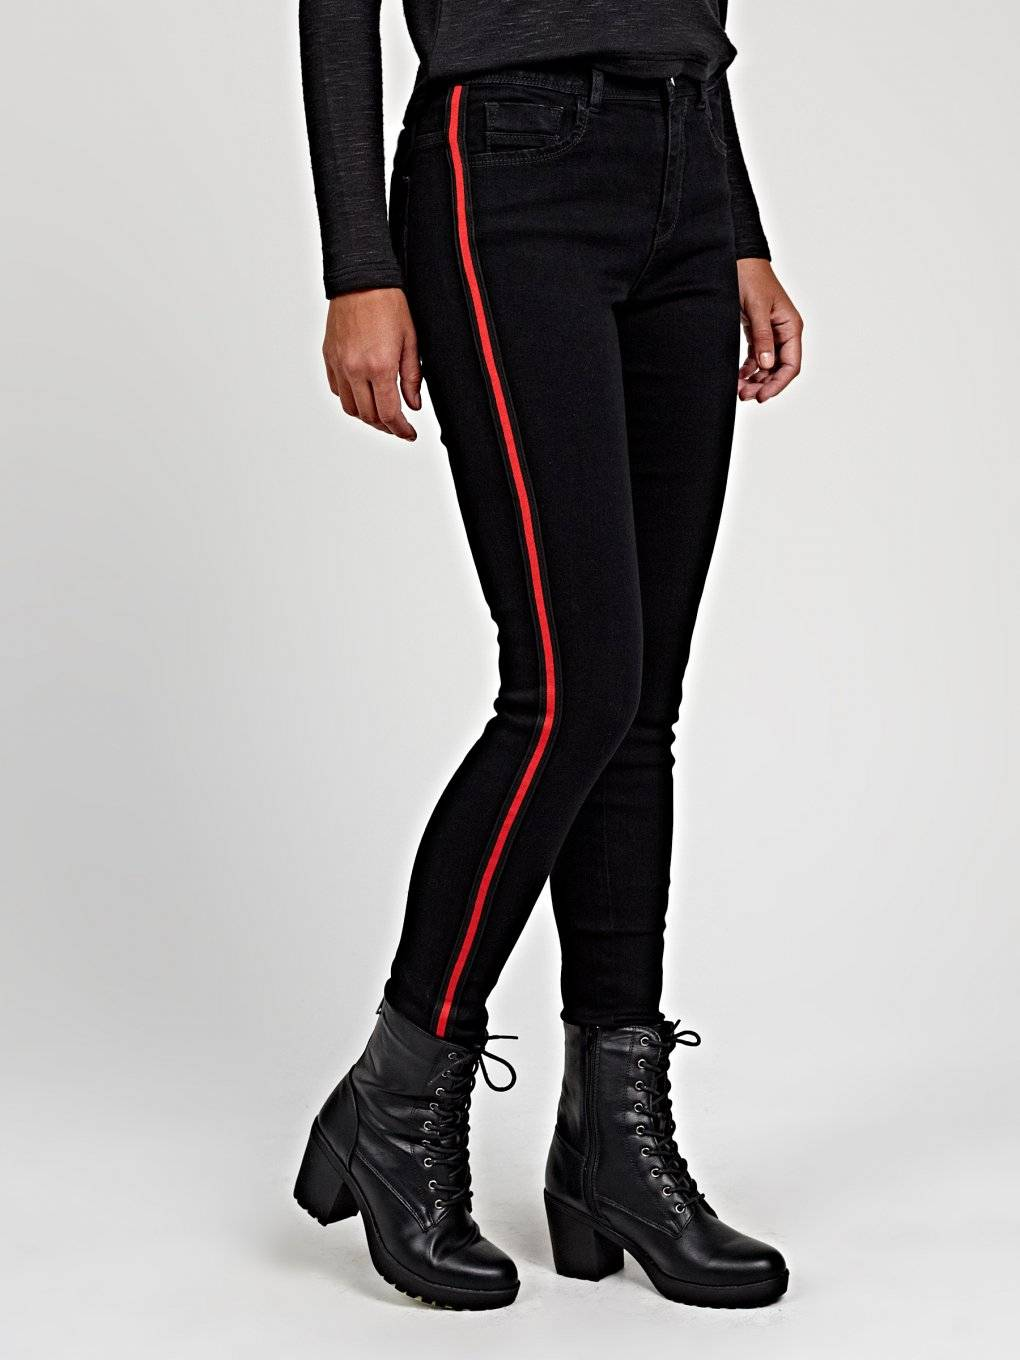 Skinny jeans with contrast side tape